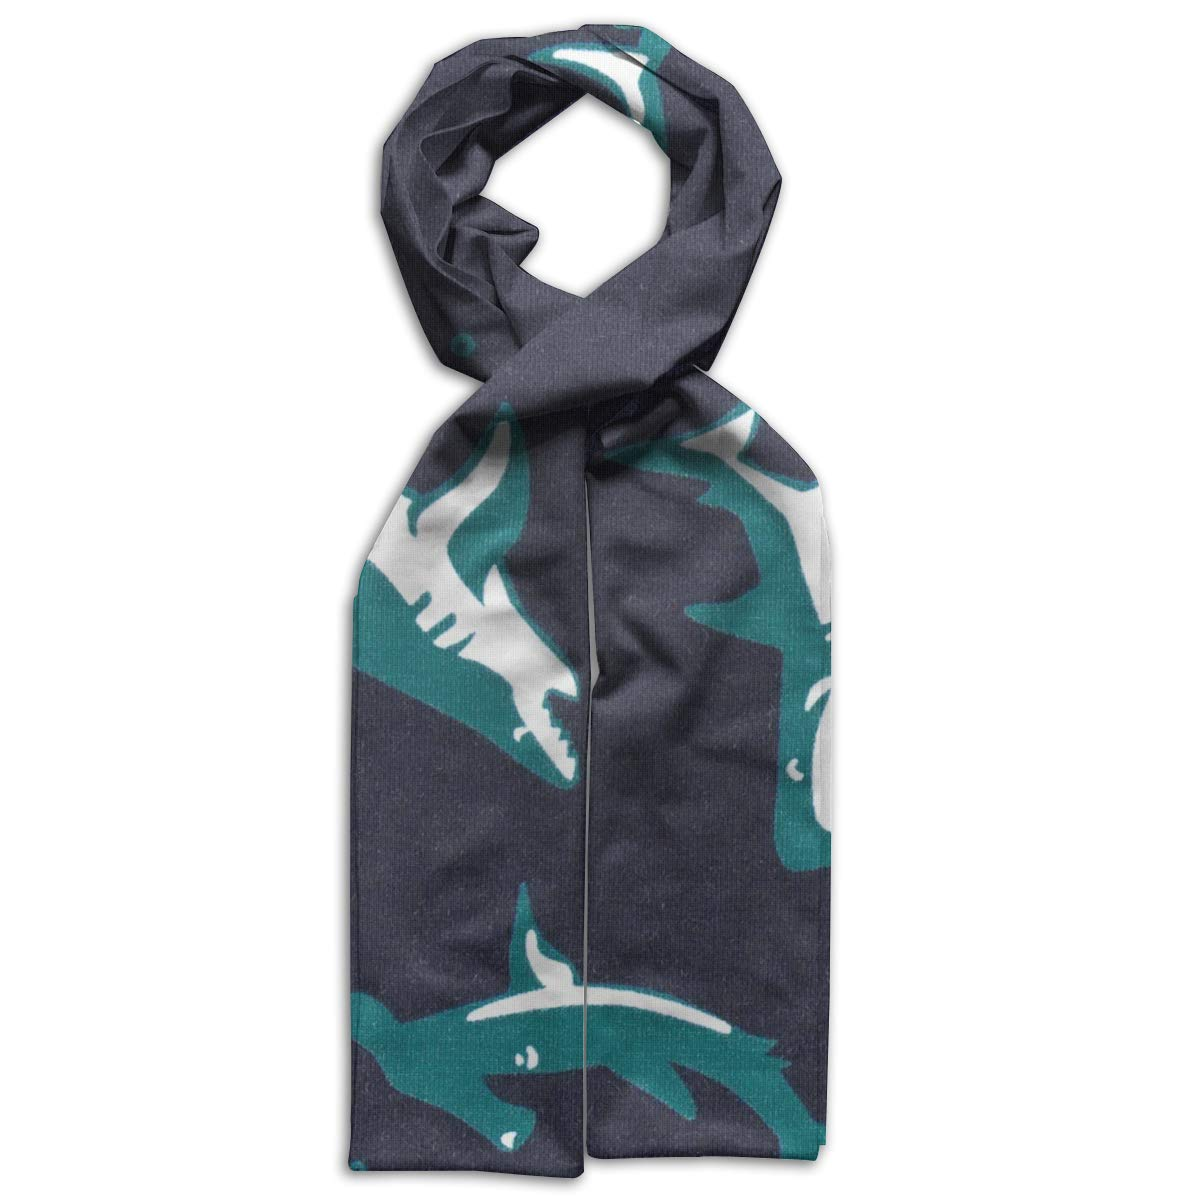 Sea Shark Pattern Childrens Children Scarf Premium Soft Family Match Scarf